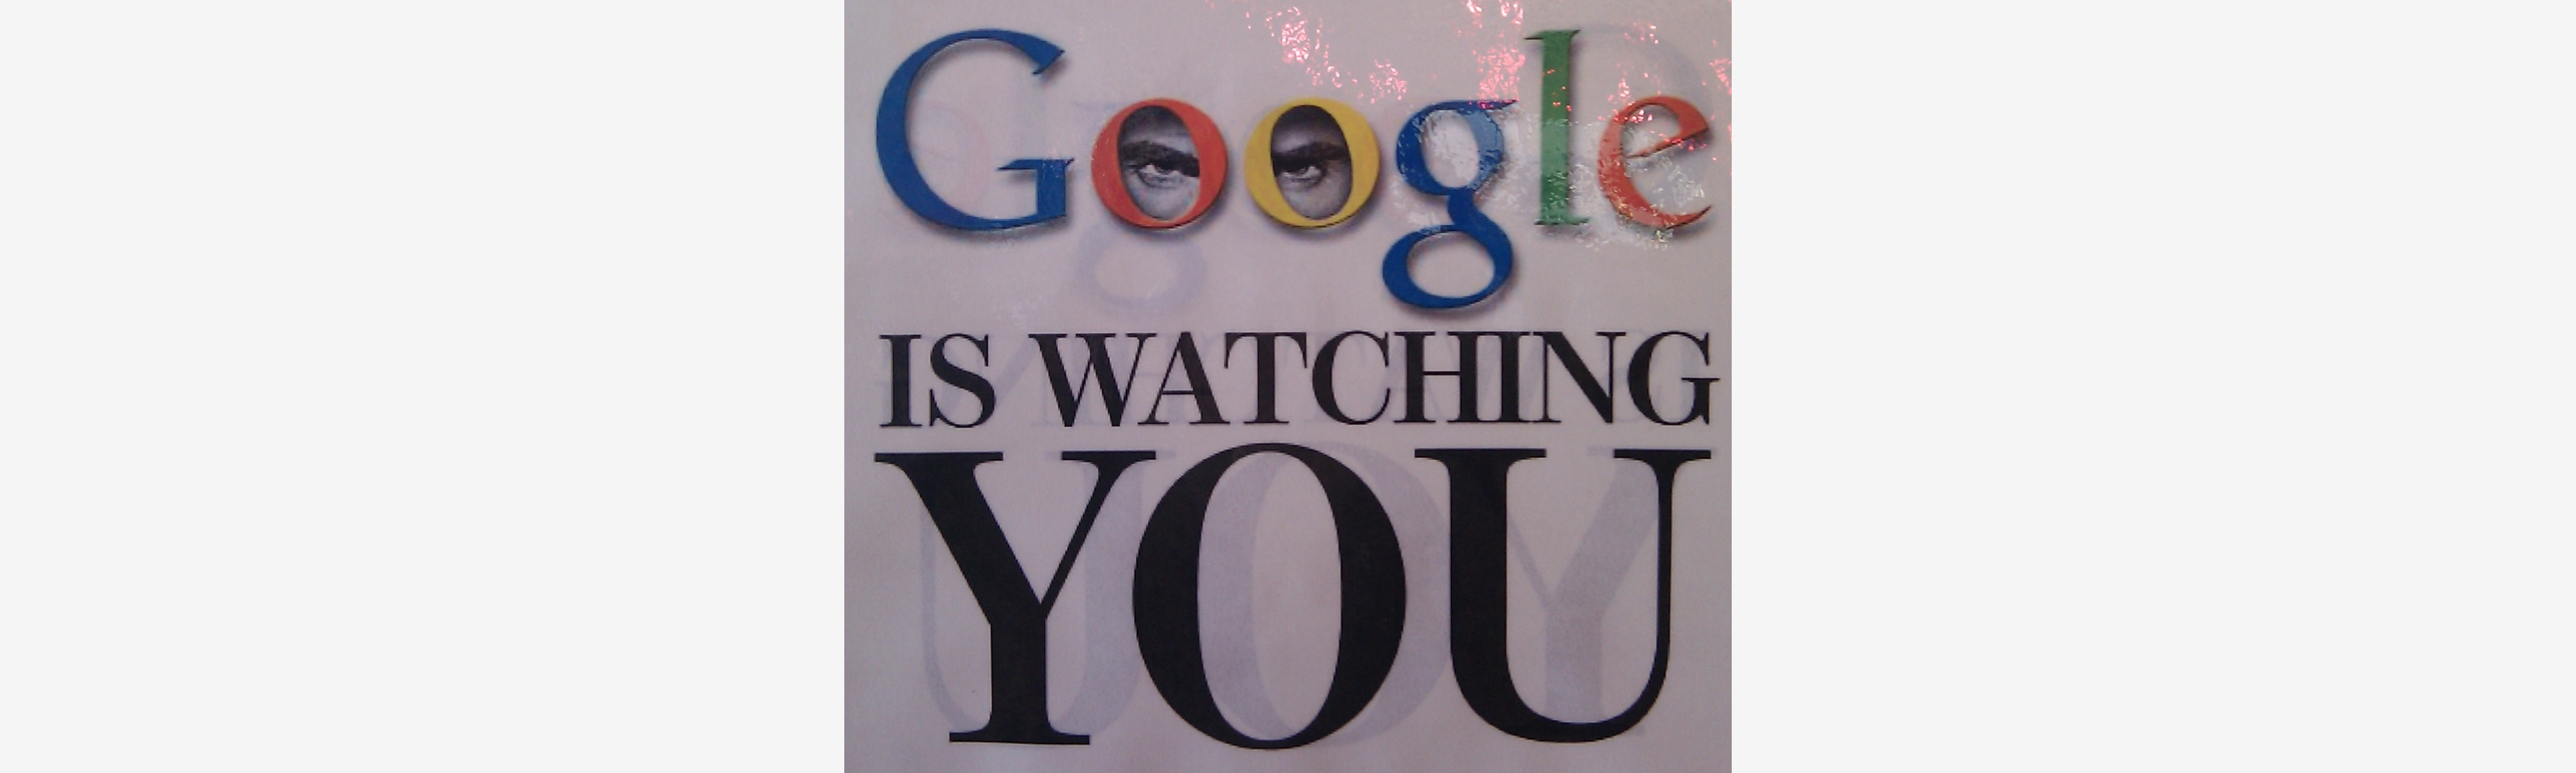 How to leave Google behind: Quick guide to take back your privacy